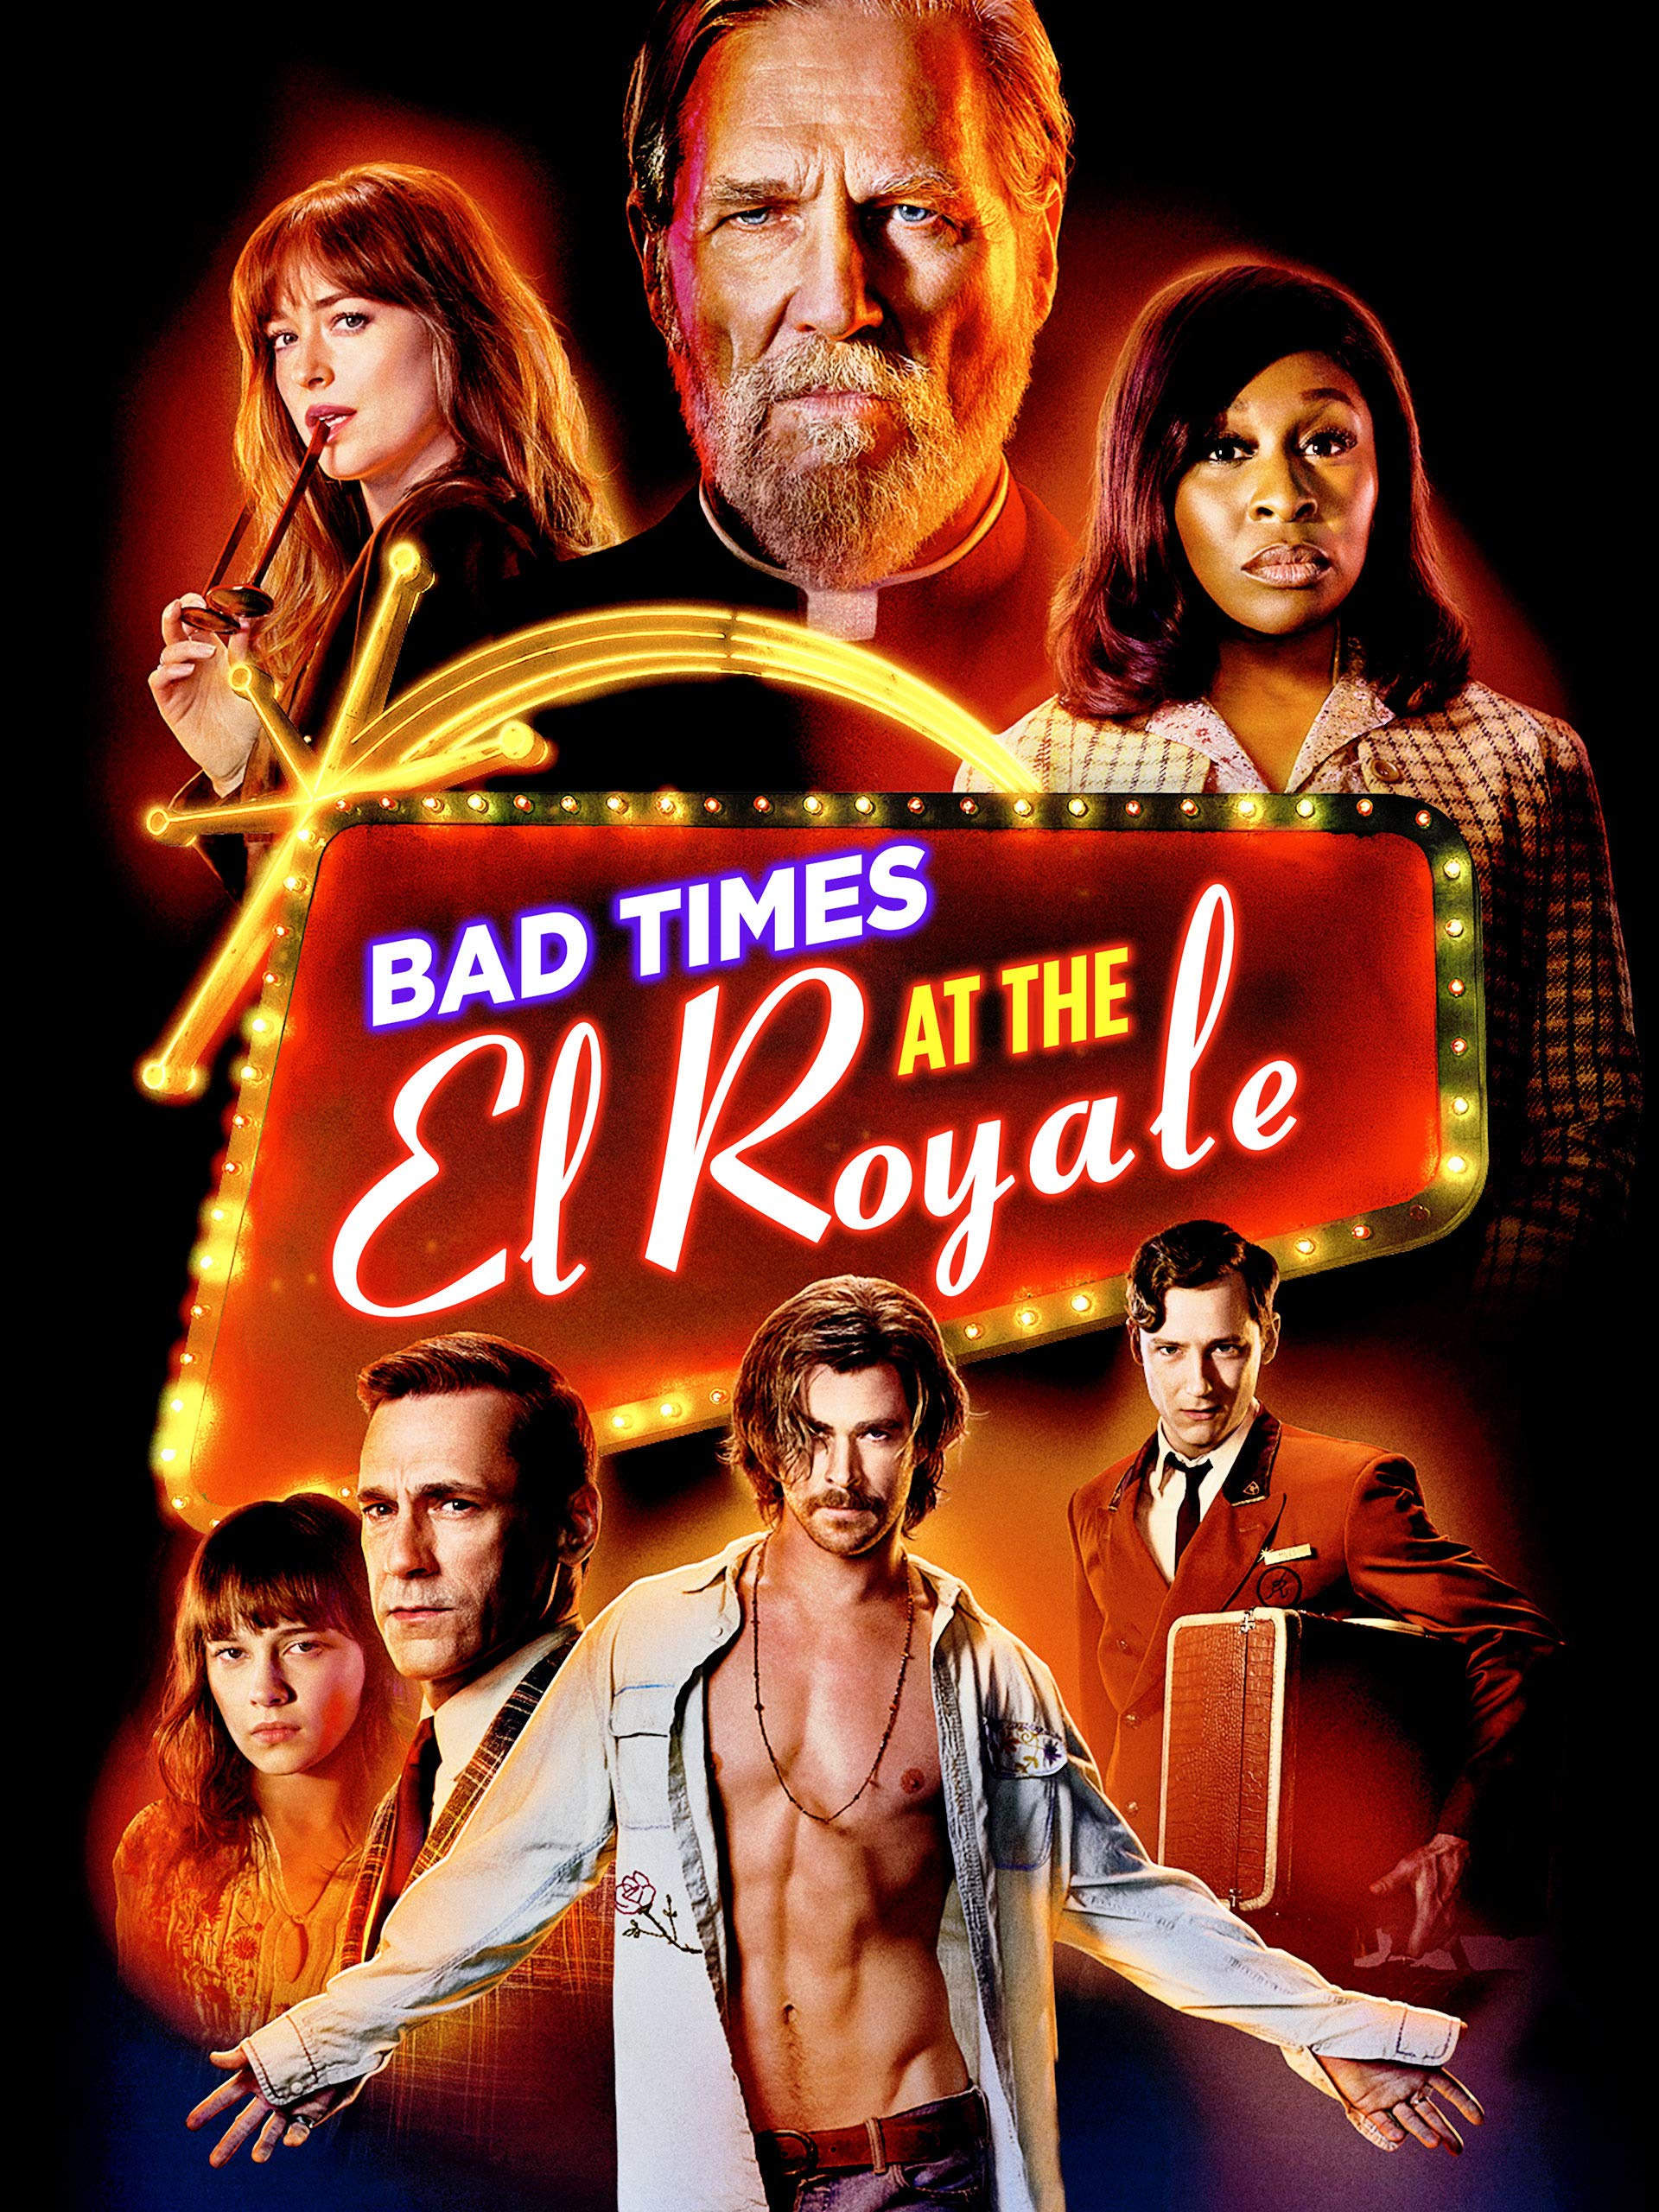 Amazon.com: Watch Bad Times at the El Royale | Prime Video